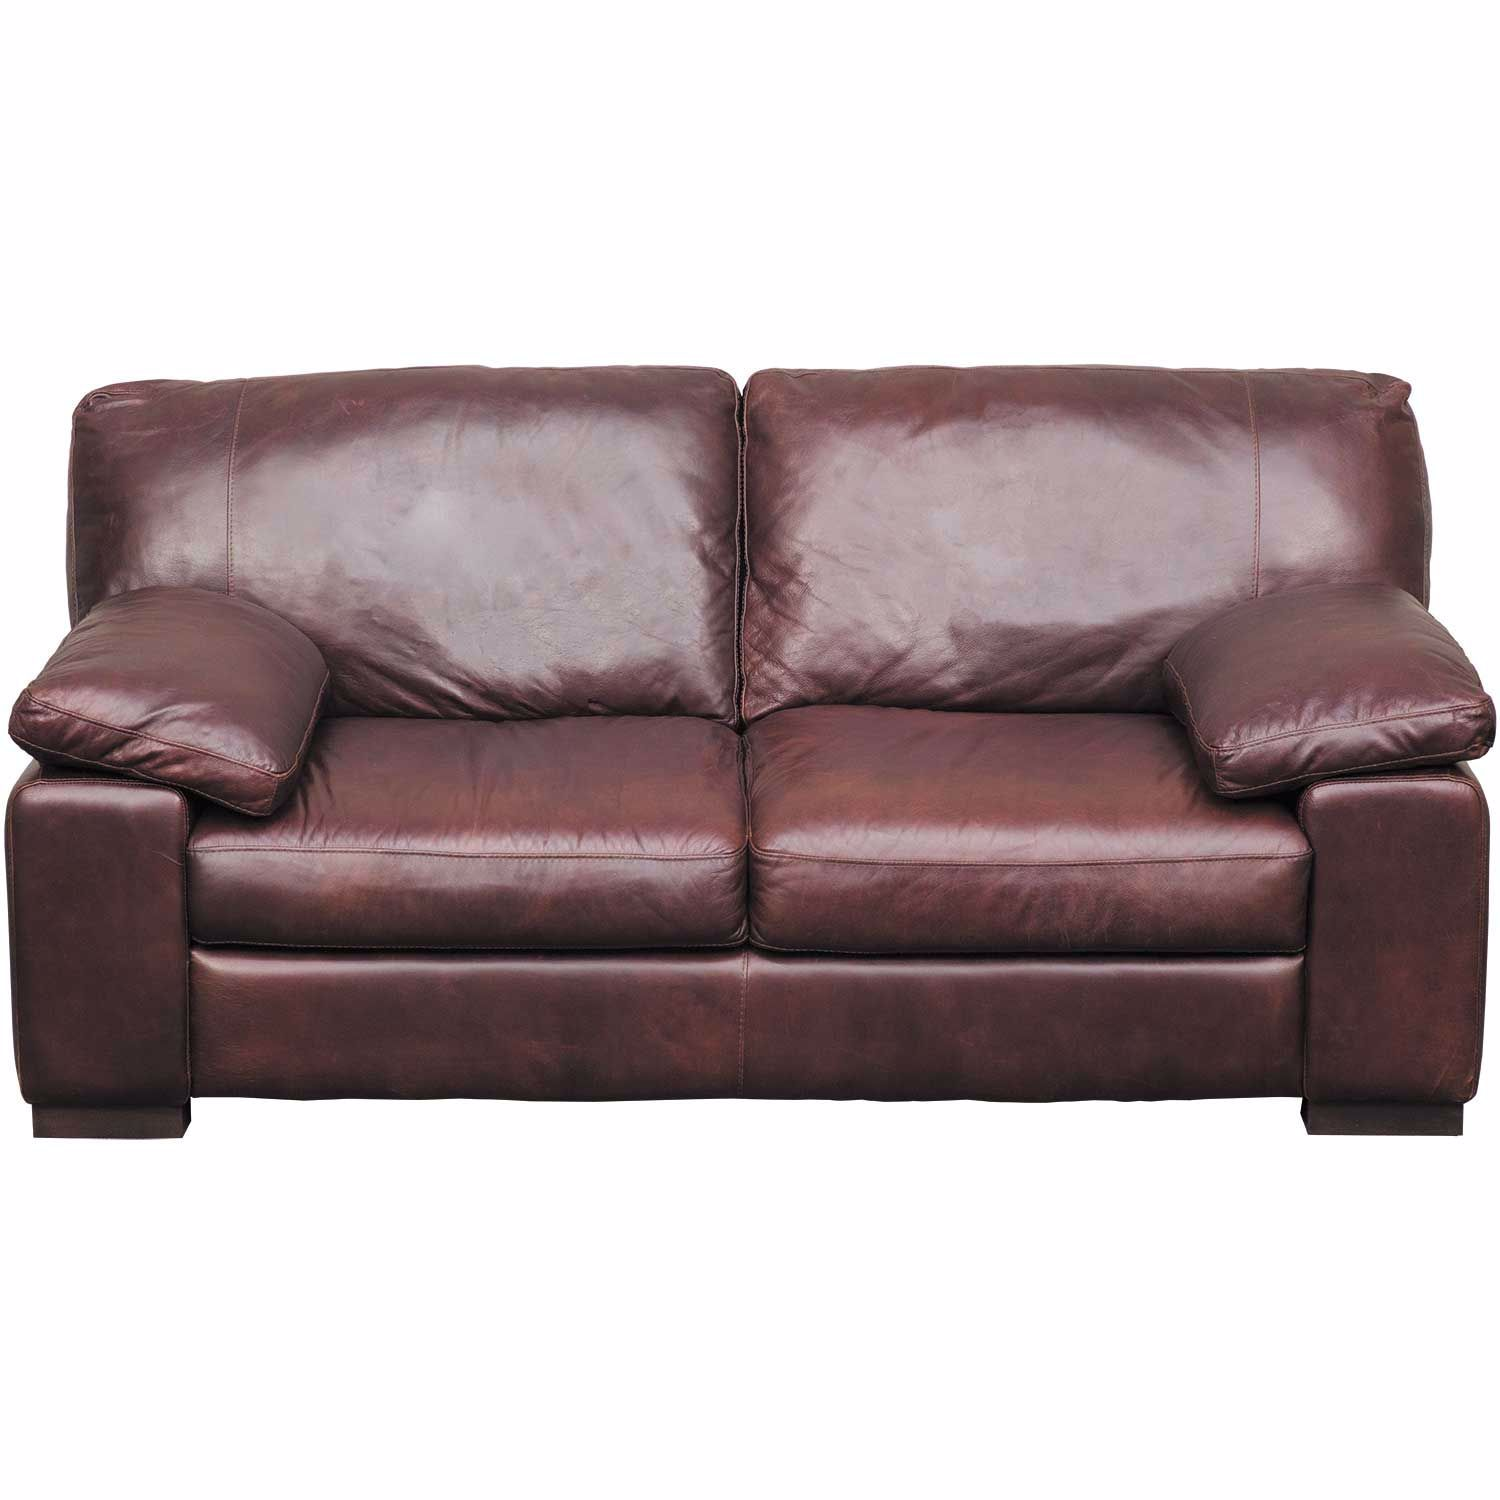 Pleasing Barcelona All Leather Loveseat Unemploymentrelief Wooden Chair Designs For Living Room Unemploymentrelieforg